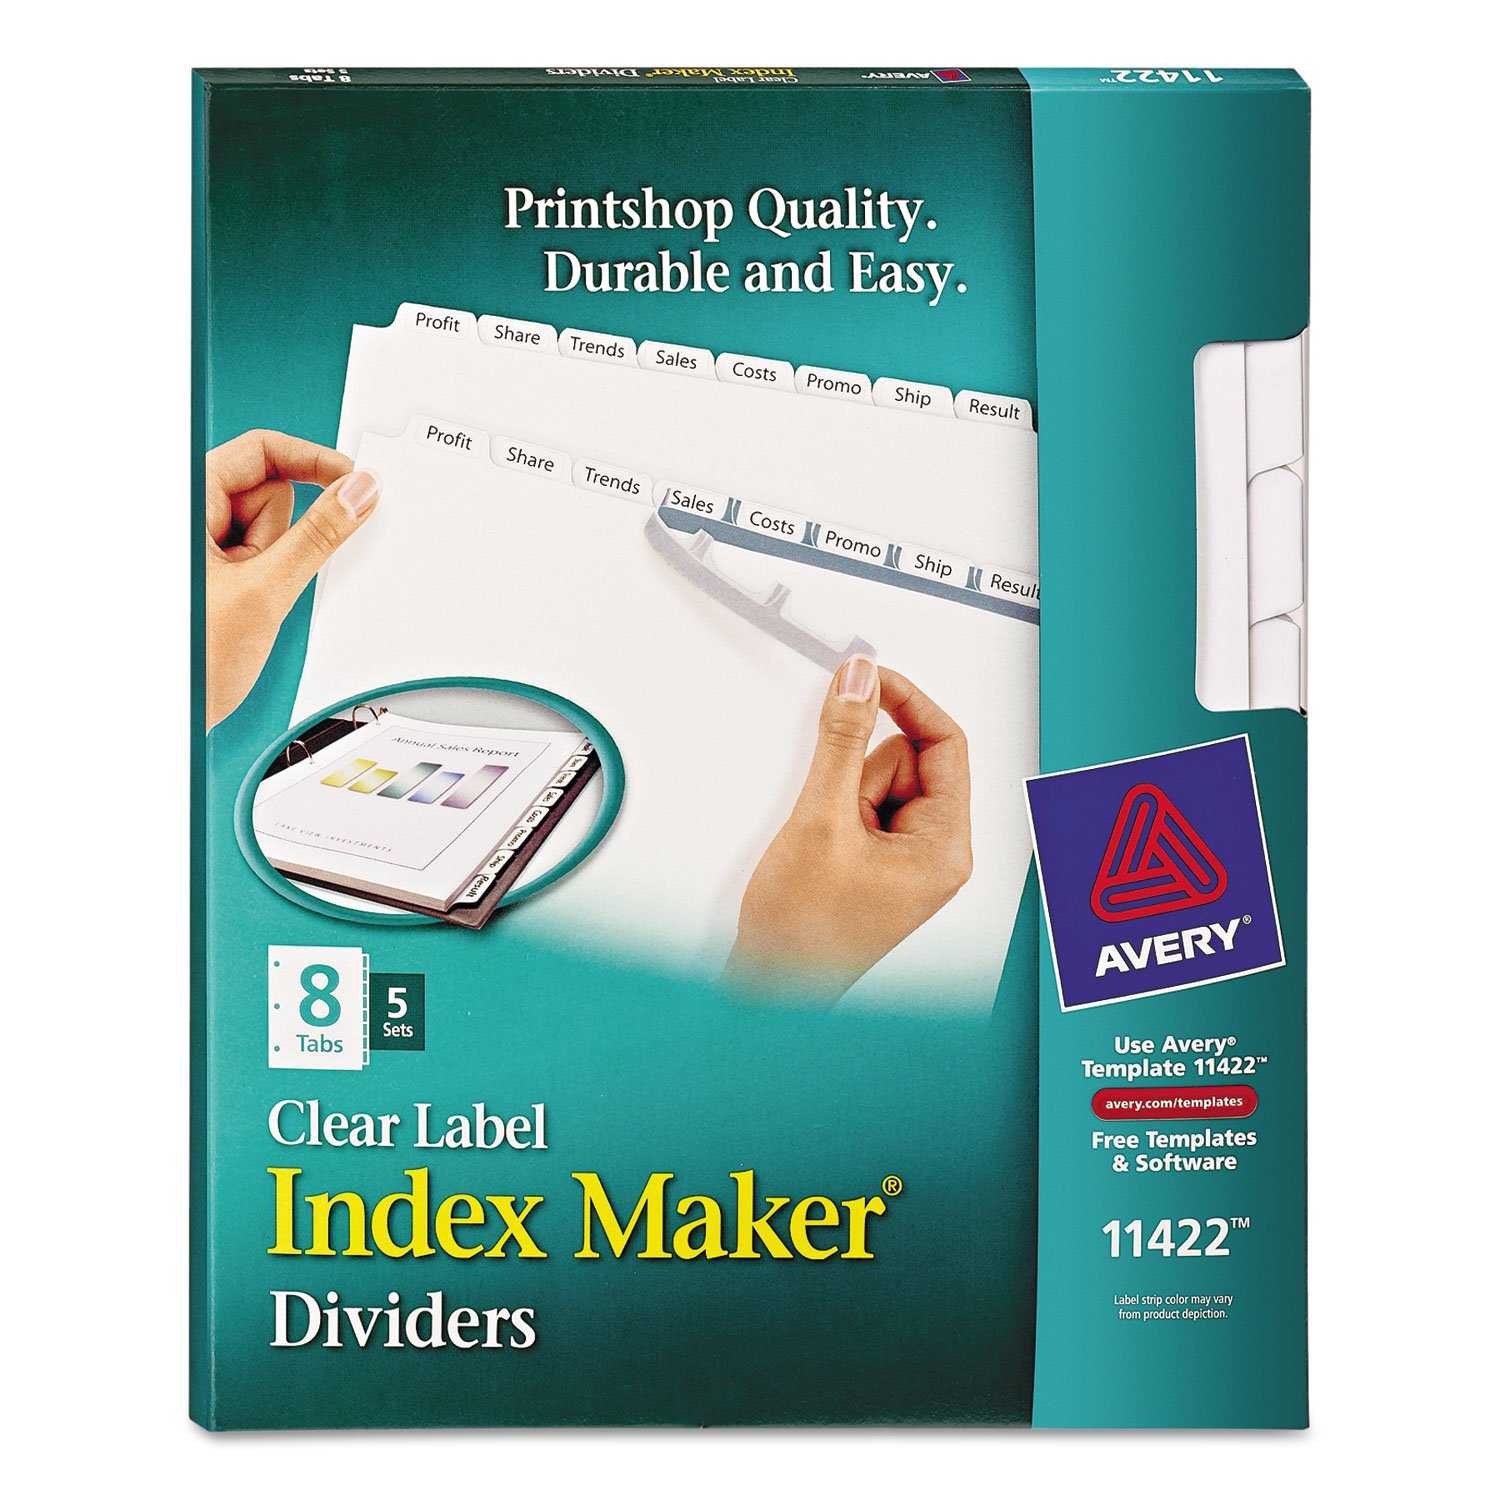 Avery 11422 Print/Apply Clear Label Dividers, White, 8-Tab Set, Letter, 5 Sets